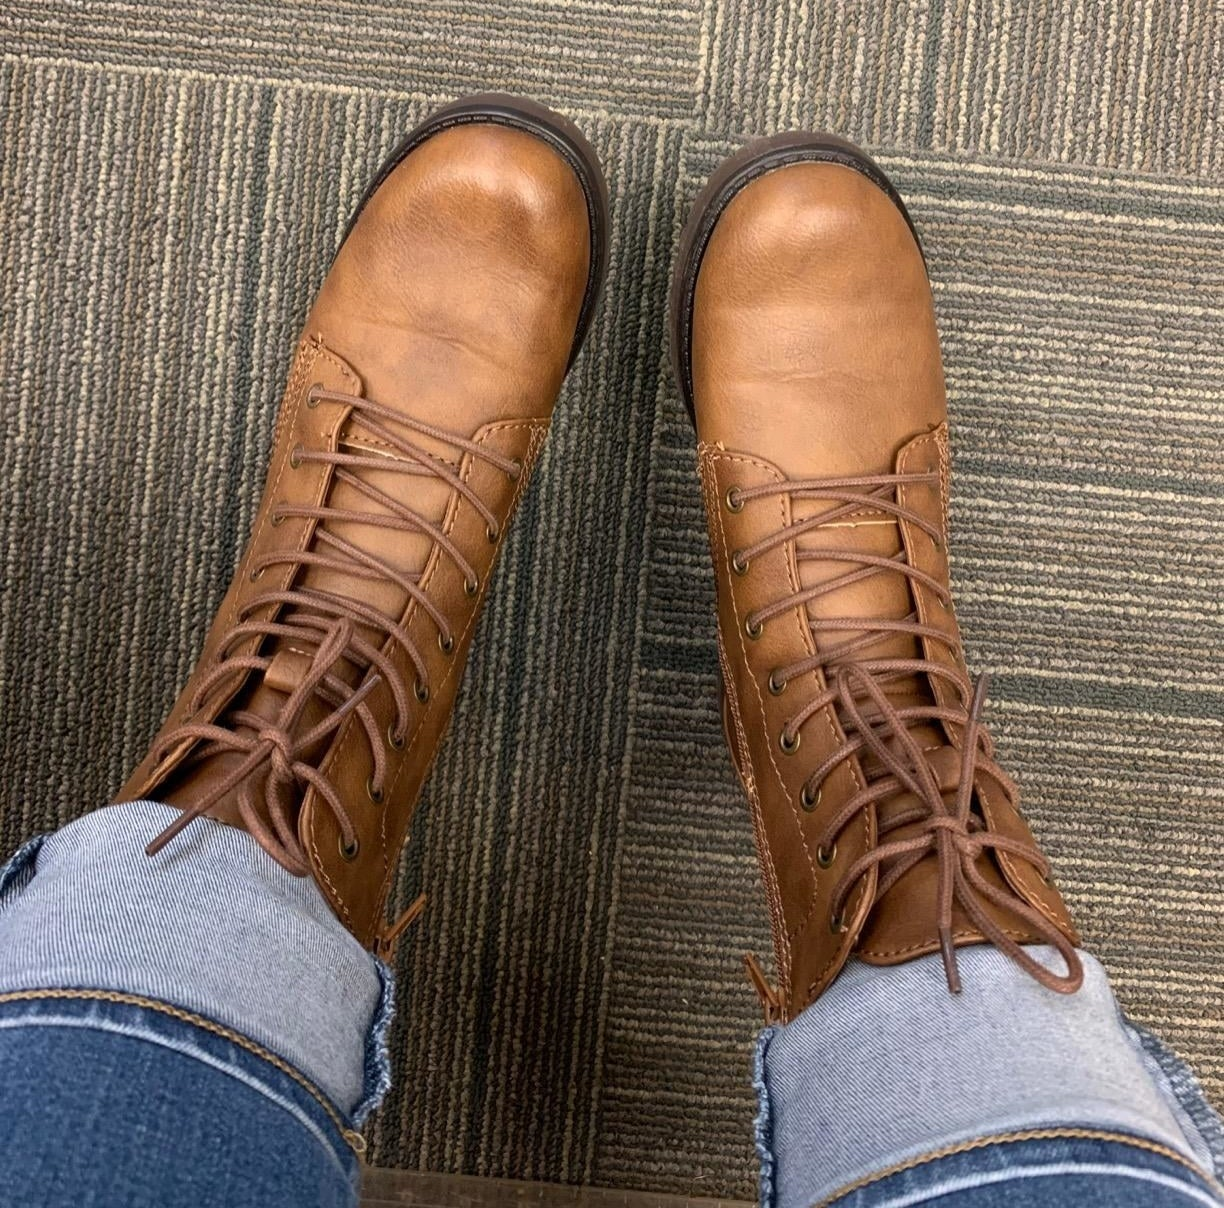 Reviewer wearing the cognac boots